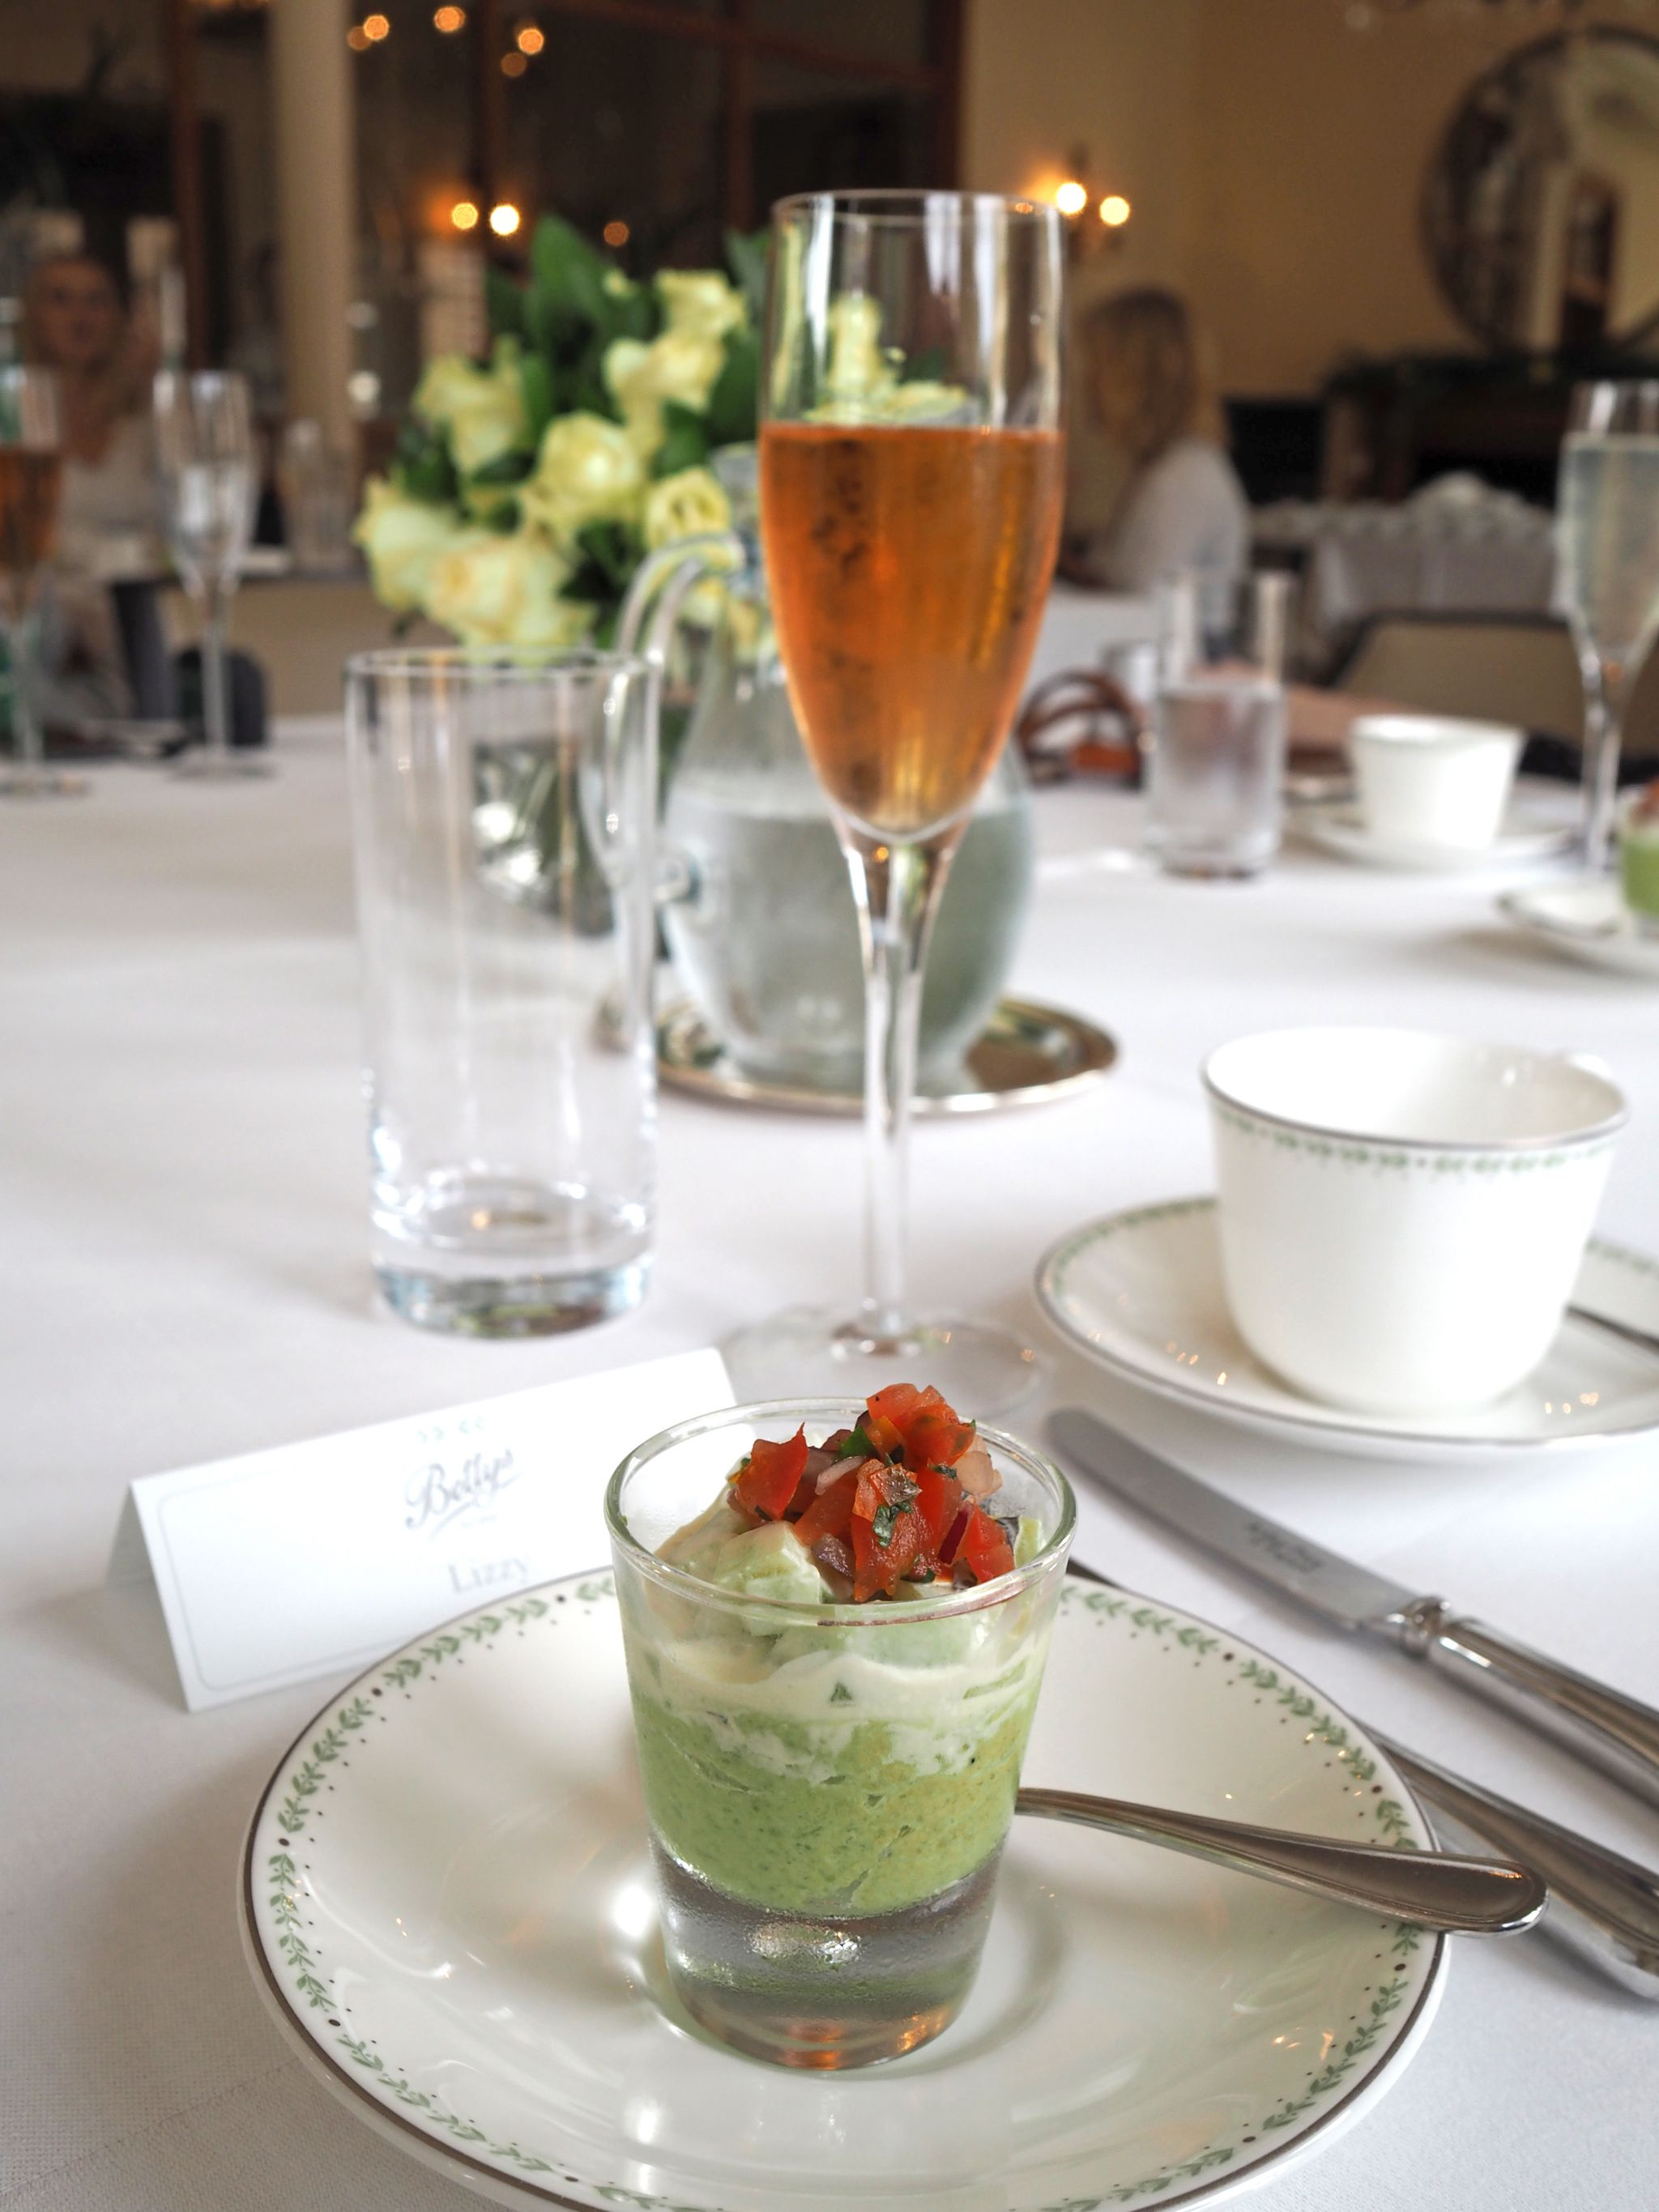 afternoon tea at bettys pea appetizer